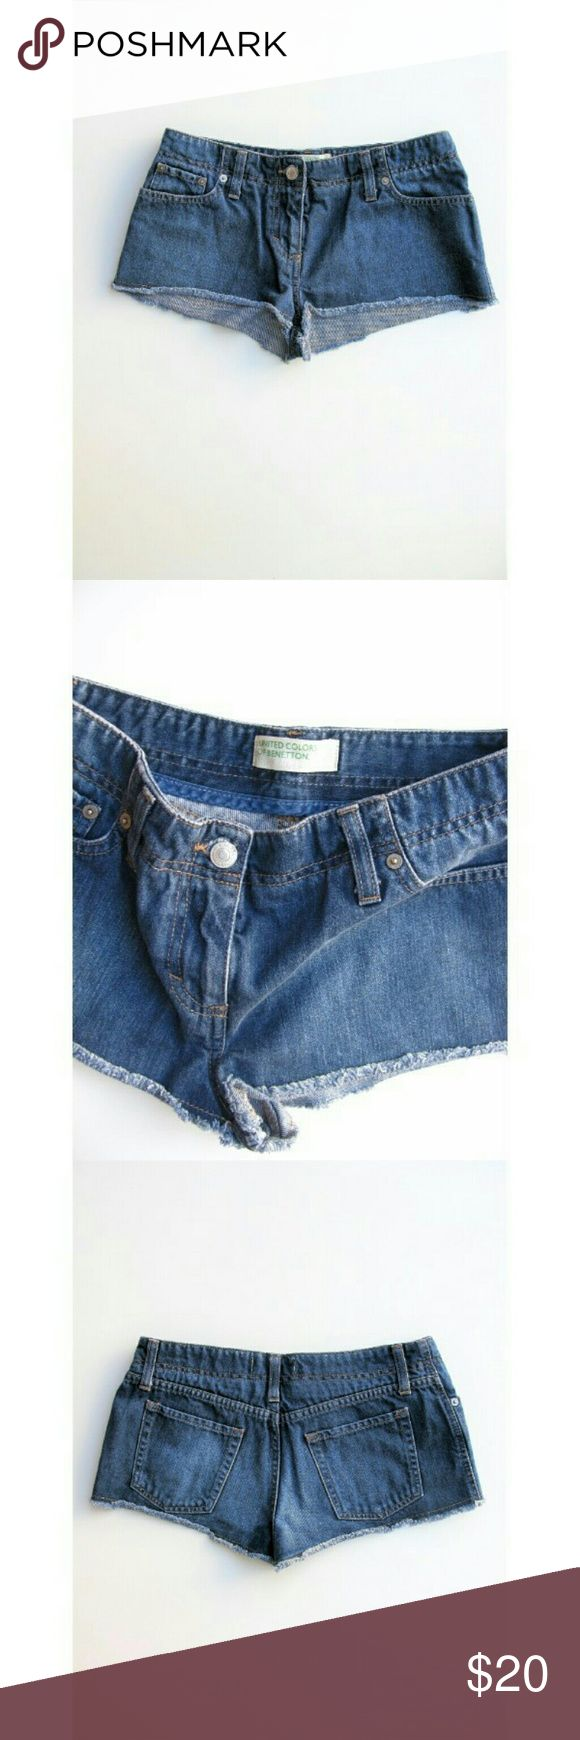 UCoB Cut-off Cheeky Jean Short Shorts 42/S United Colors of Benetton Cut-offs in Medium Blue Wash, 5 Pocket Styleing, Low Rise, Zip & Button, Frayed Hem - Excellent, Rarely Worn, Nearly New -  - Waist 14-- Hips 17.5-- Rise 8-- Length 8 outseam -- 100 Cotton United Colors Of Benetton Shorts Jean Shorts